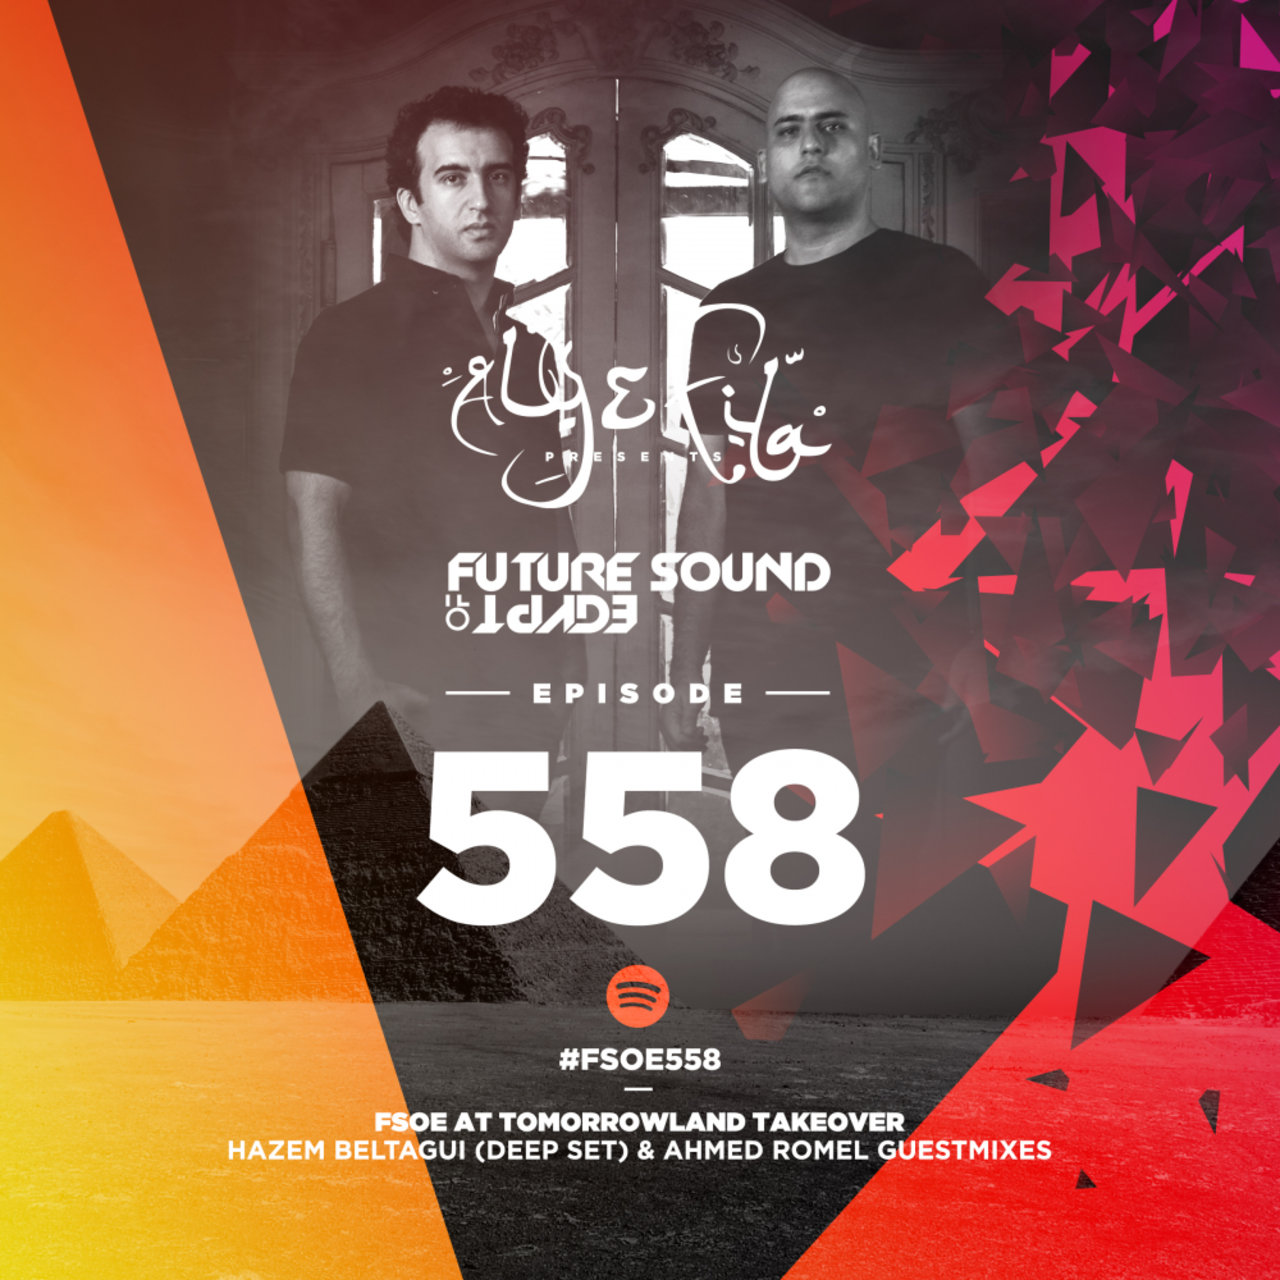 Future Sound Of Egypt Episode 558 (Hazem Beltagui & Ahmed Romel Takeover)